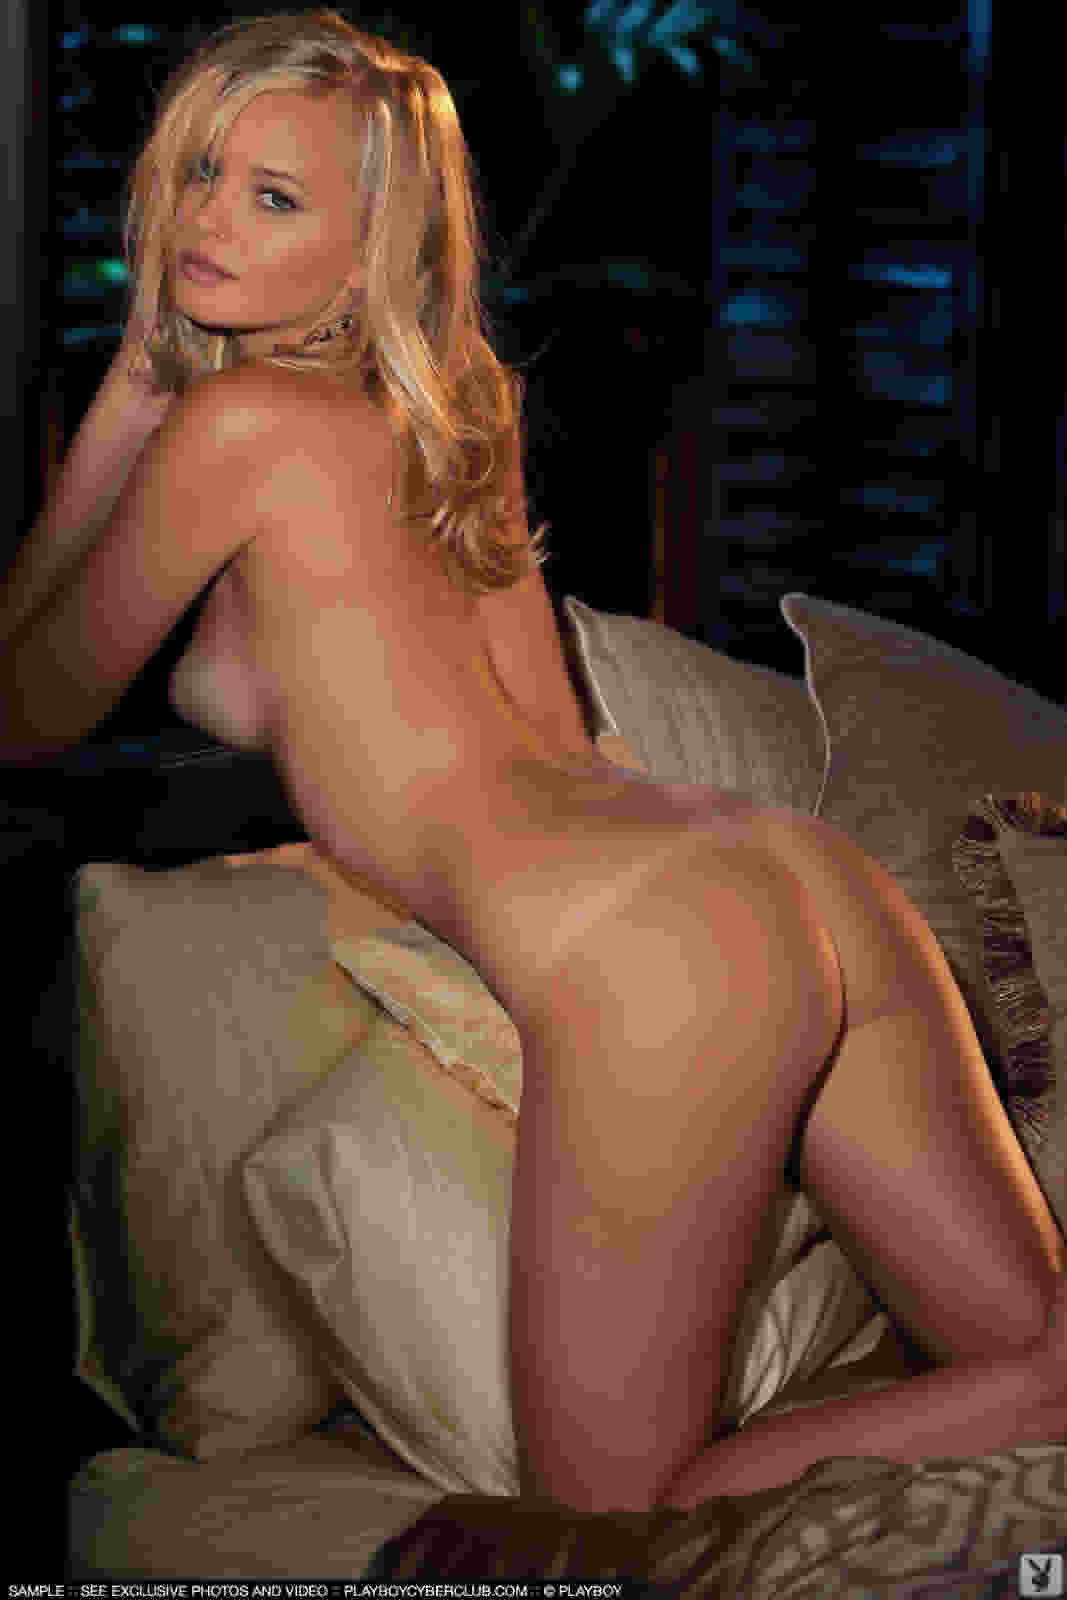 ashley hobbs playboy playmate and nude model videos plus playboy nude pics